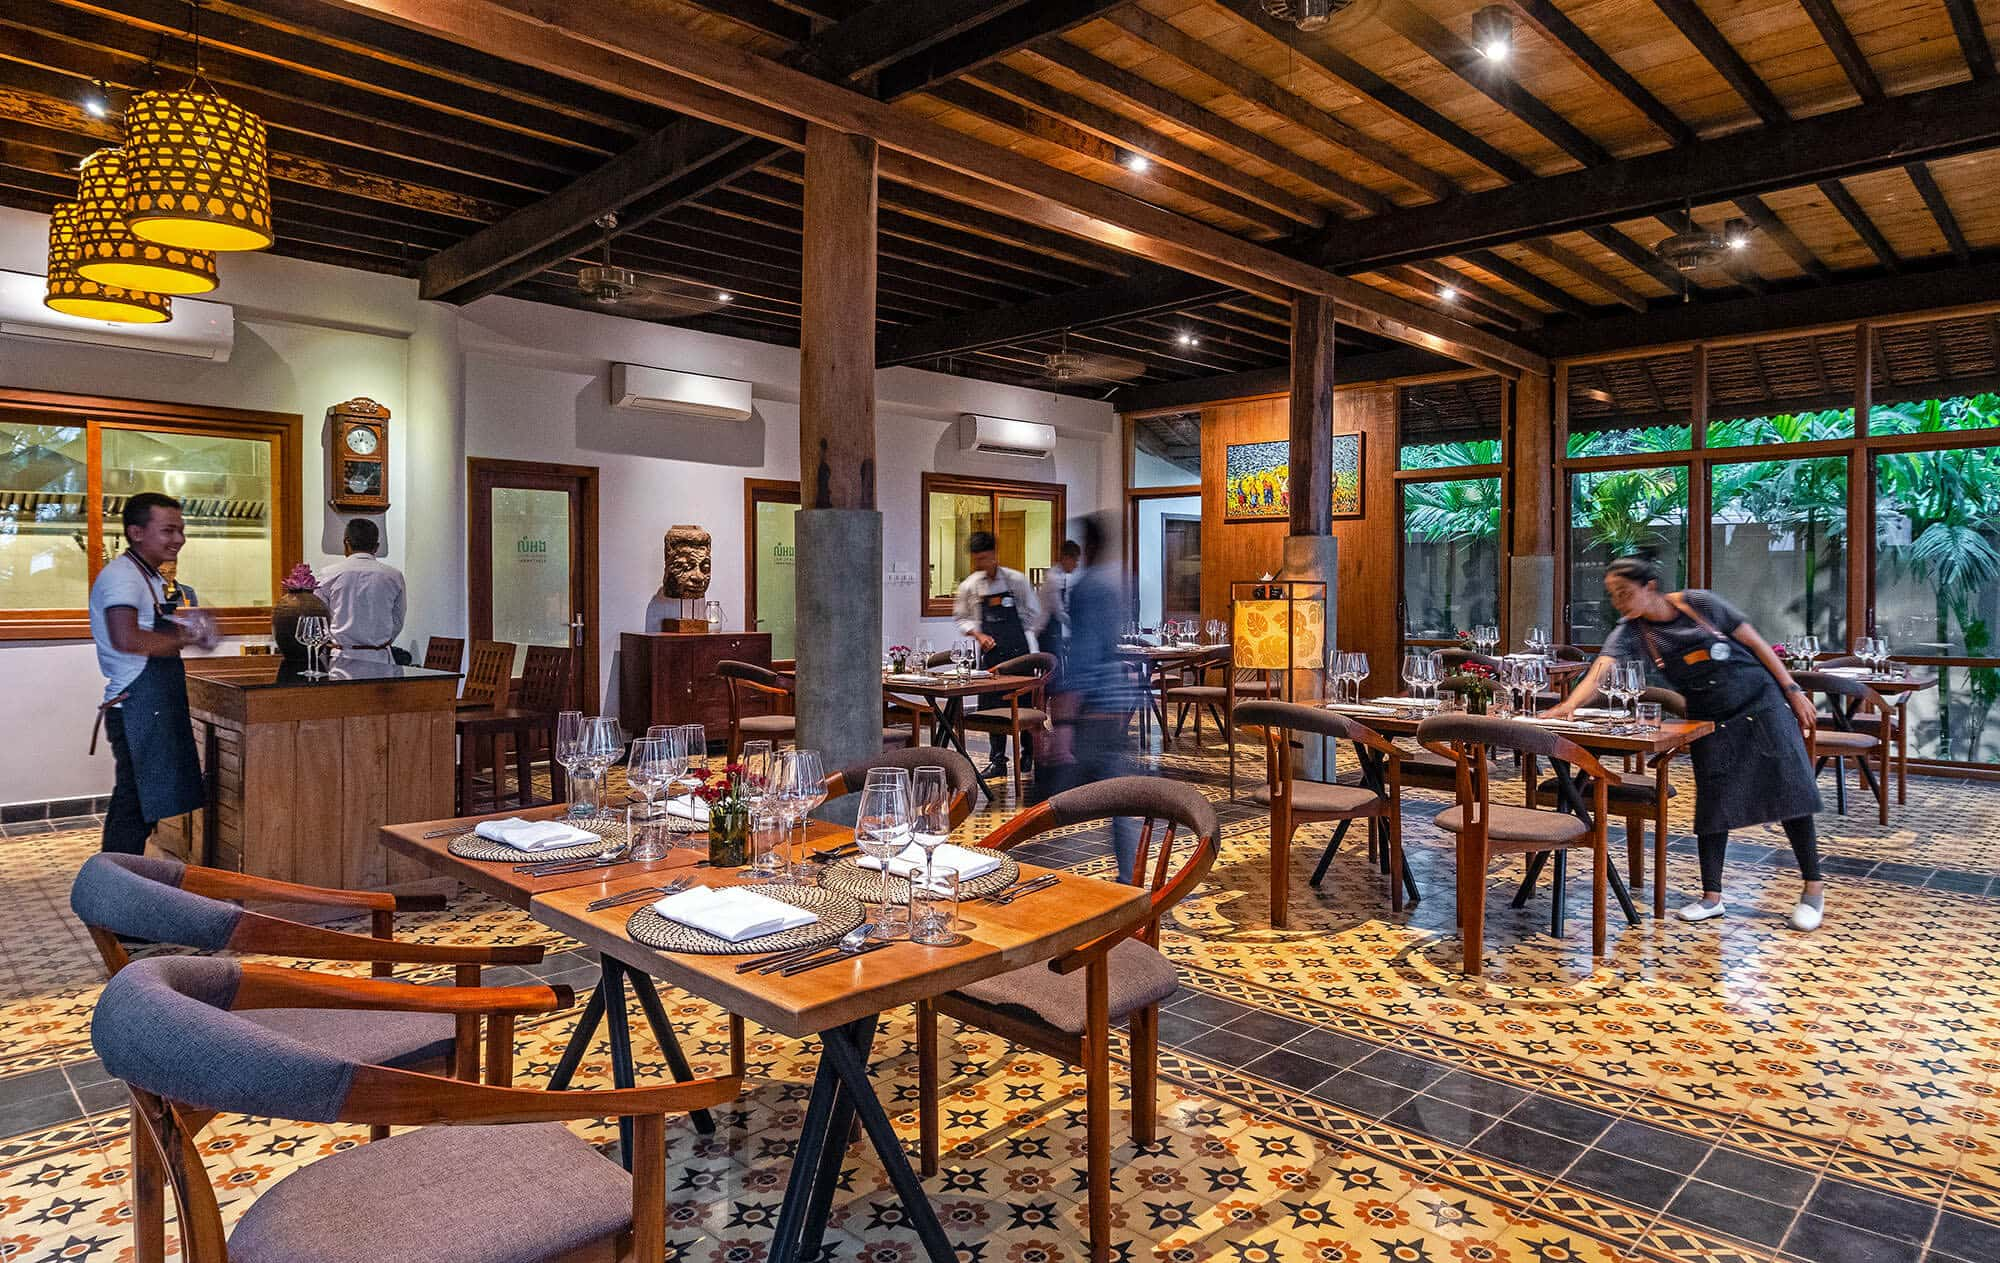 Lum Orng Restaurant, Cambodia's First Farm to Table Restaurant. New Mekong Cuisine from Cambodia and beyond. Siem Reap, Cambodia.